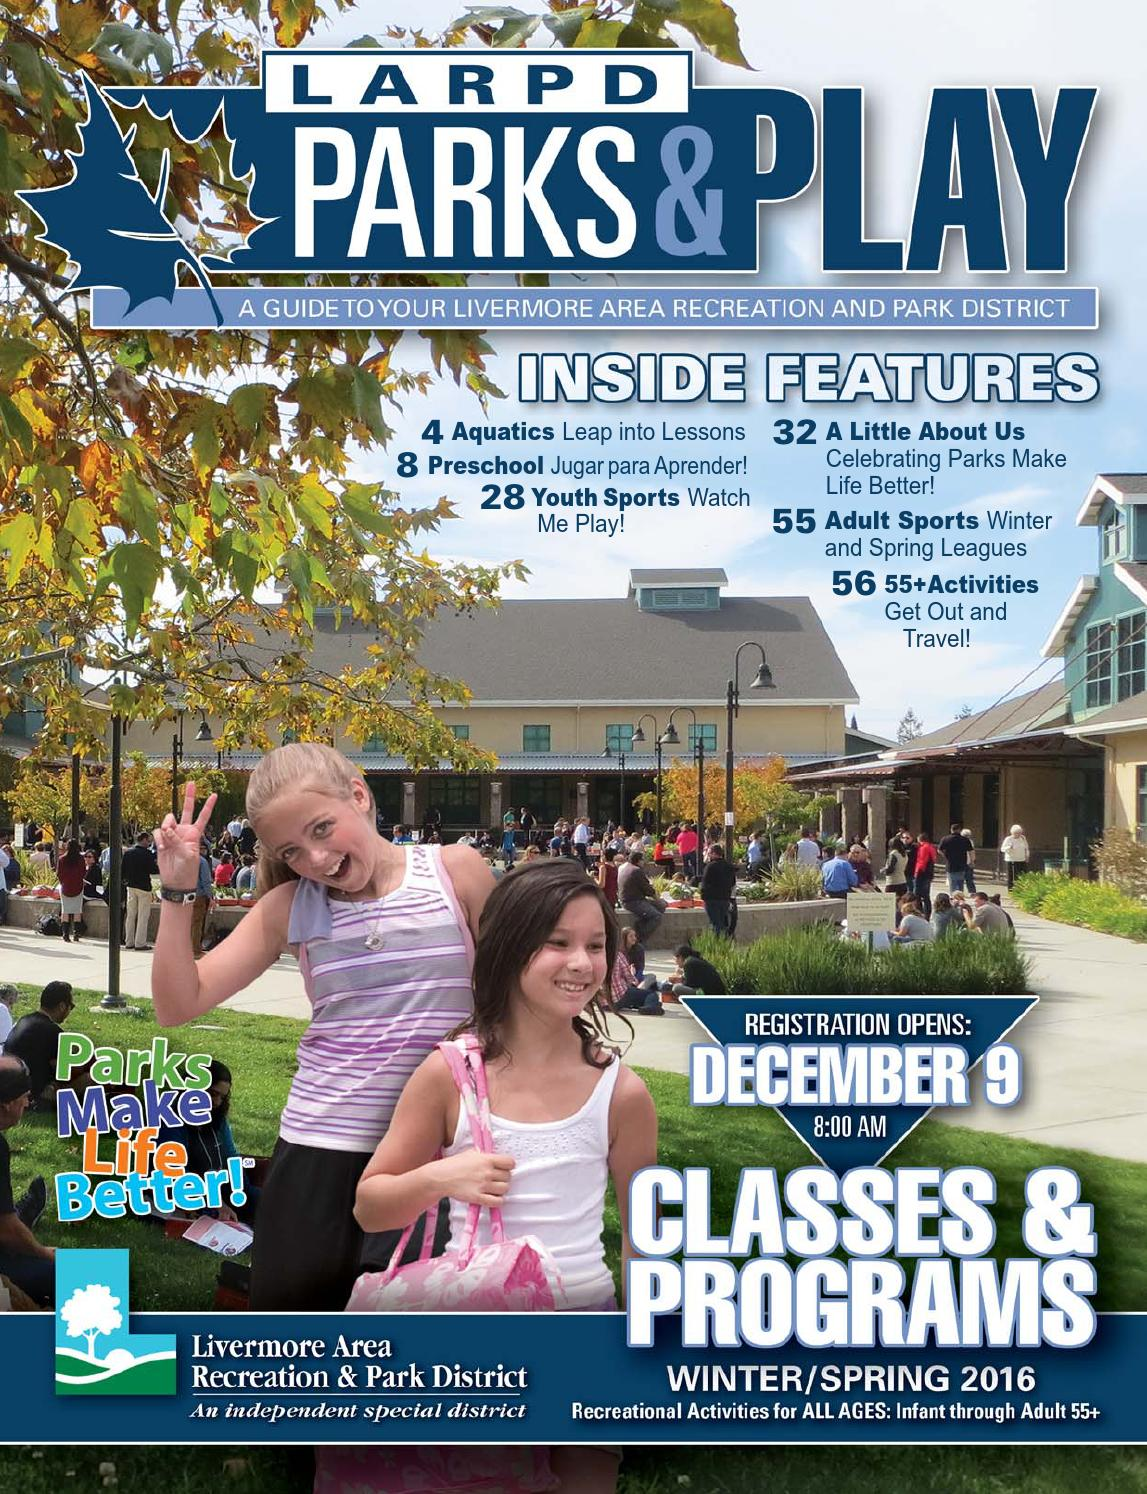 Livermore Area Recreation & Park District Winter/Spring 2016